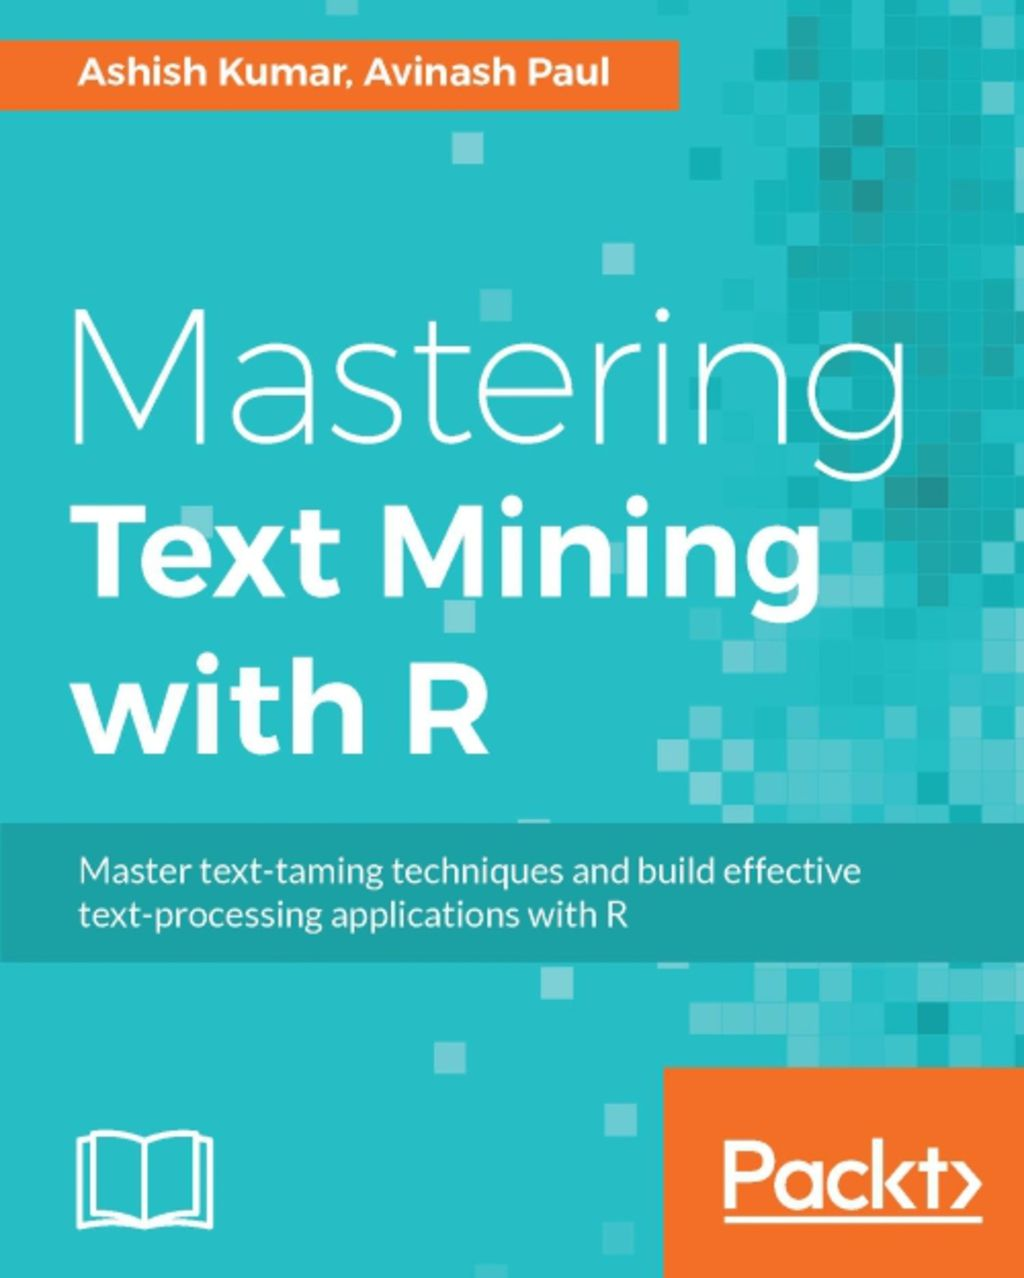 text mining vs machine learning